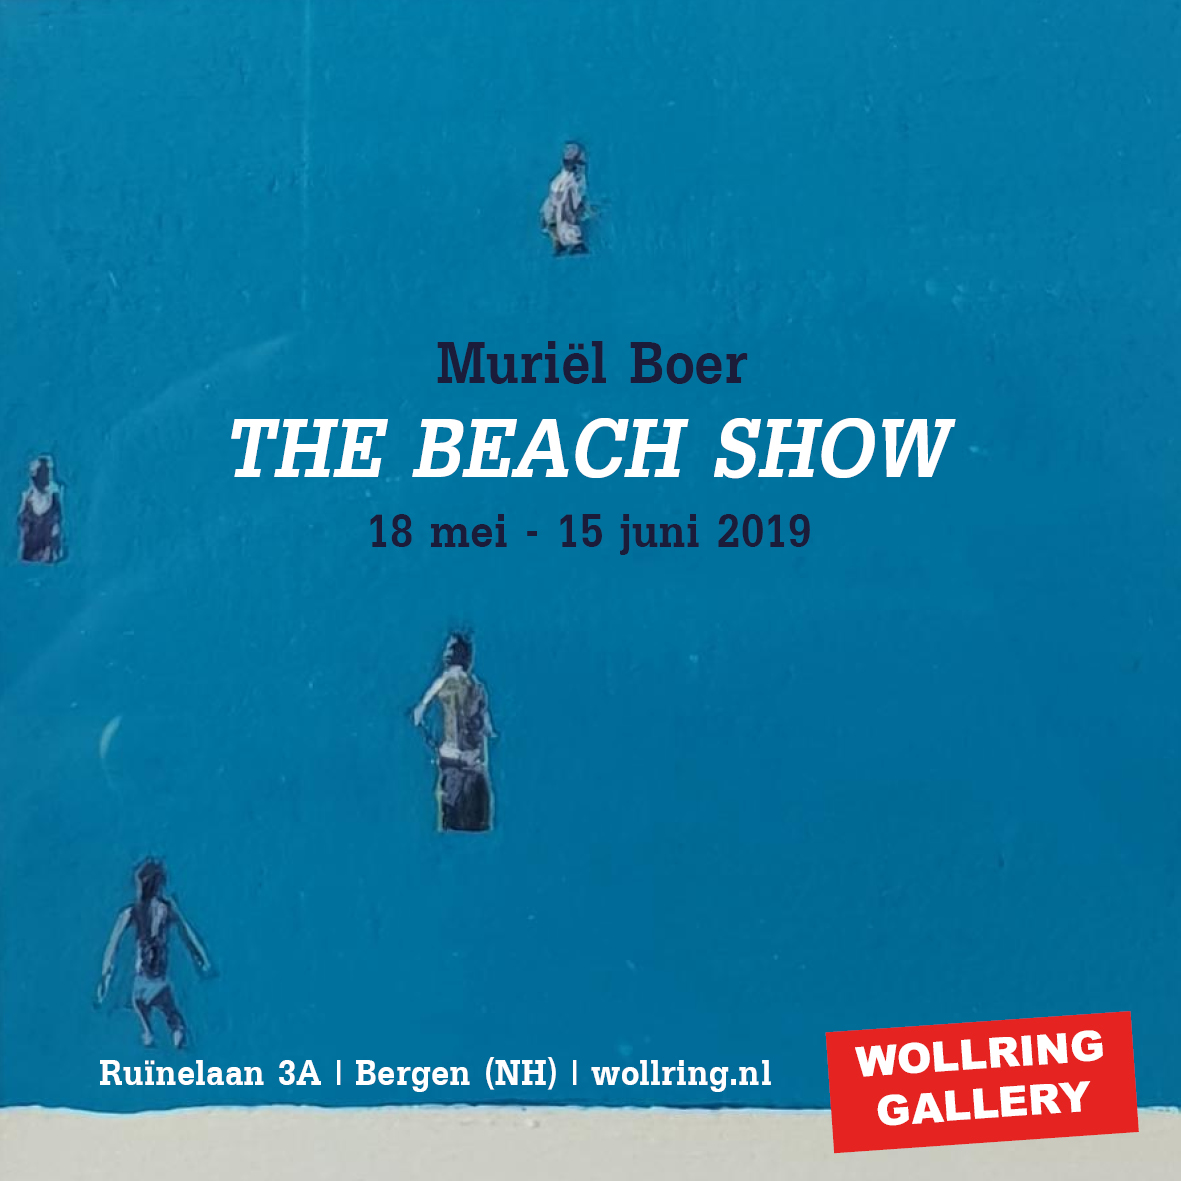 the beach show muriel boer